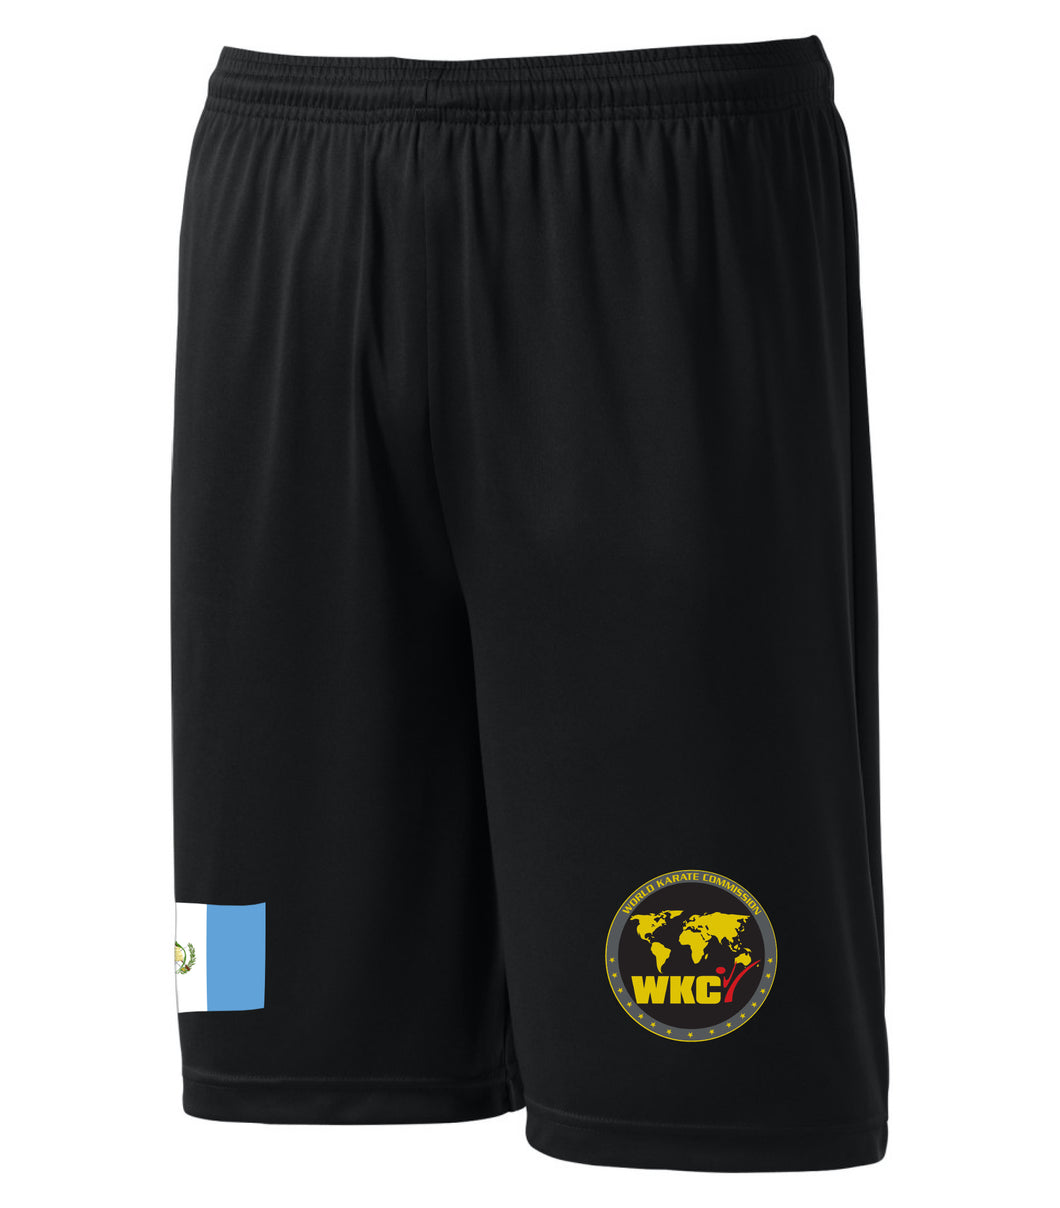 WKC Athletic Shorts